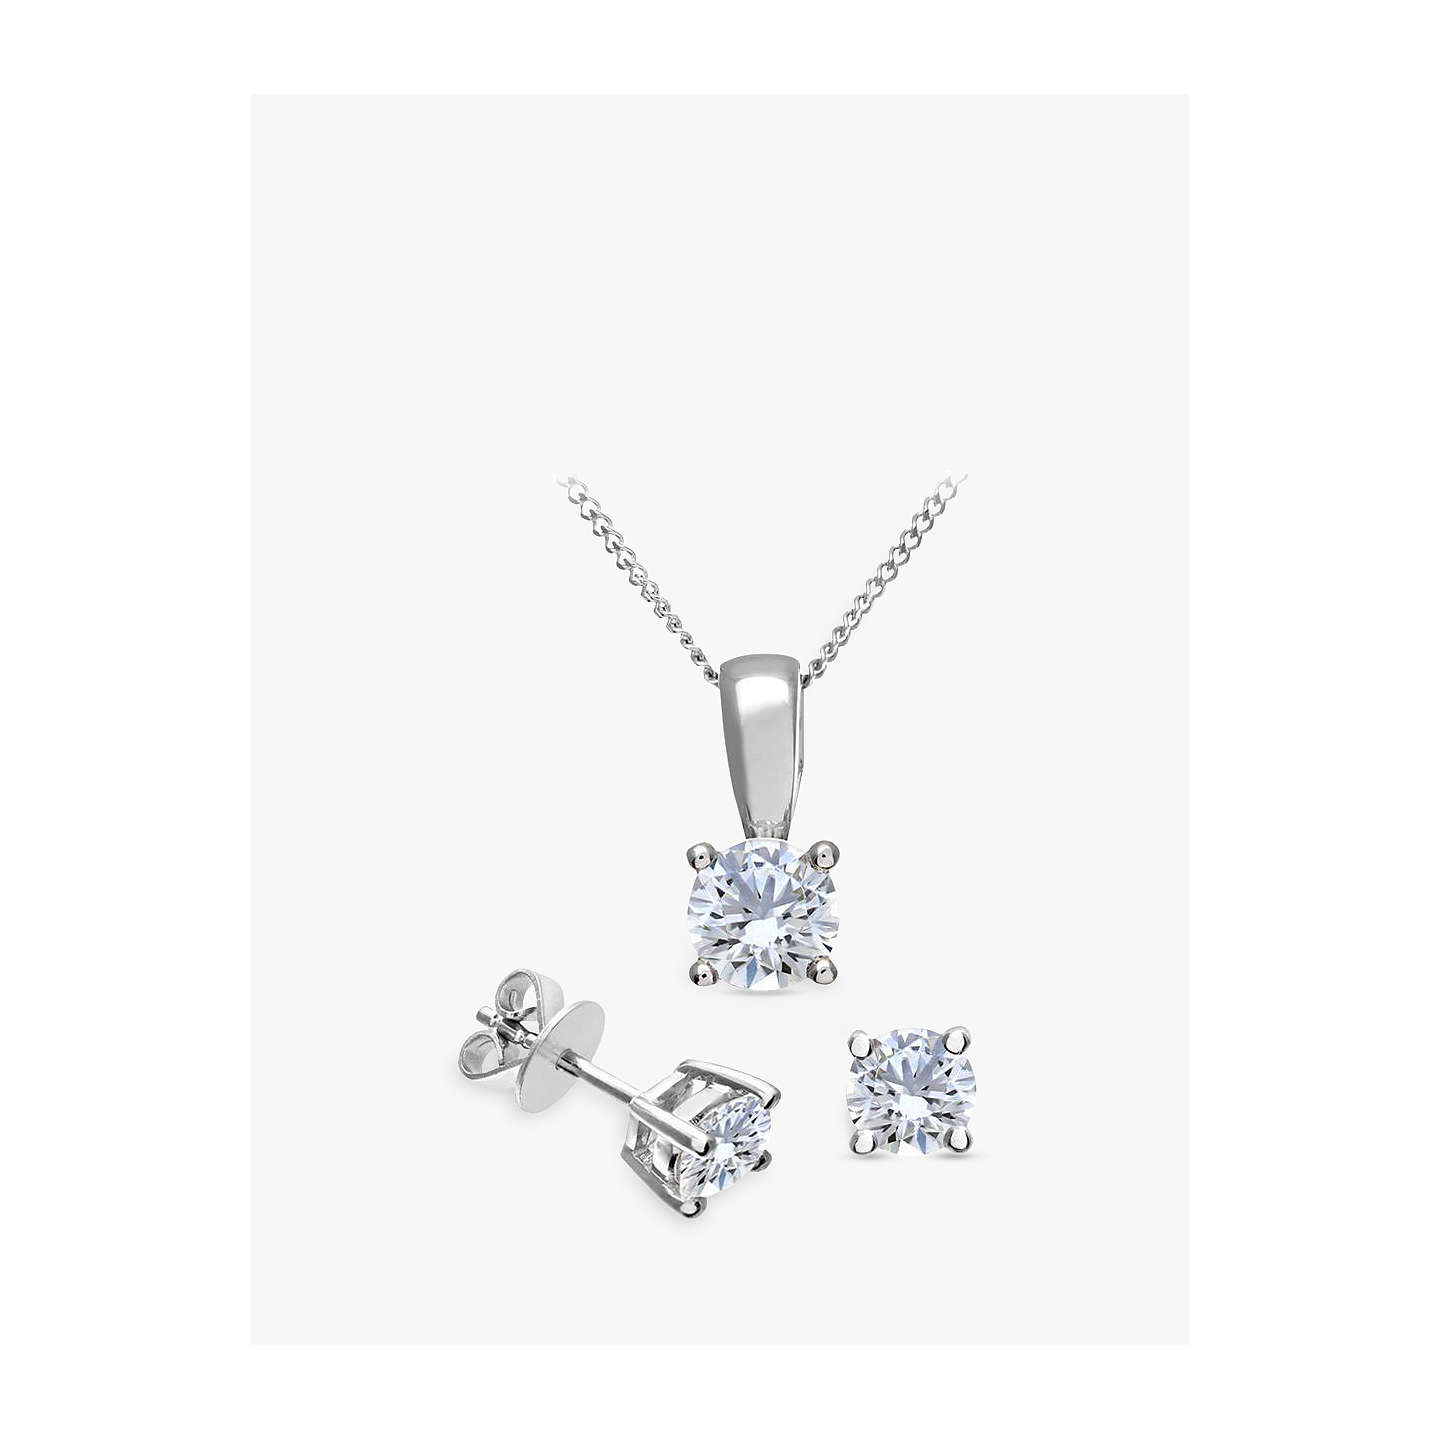 pin necklace oro want pinterest diamond vrai solitaire